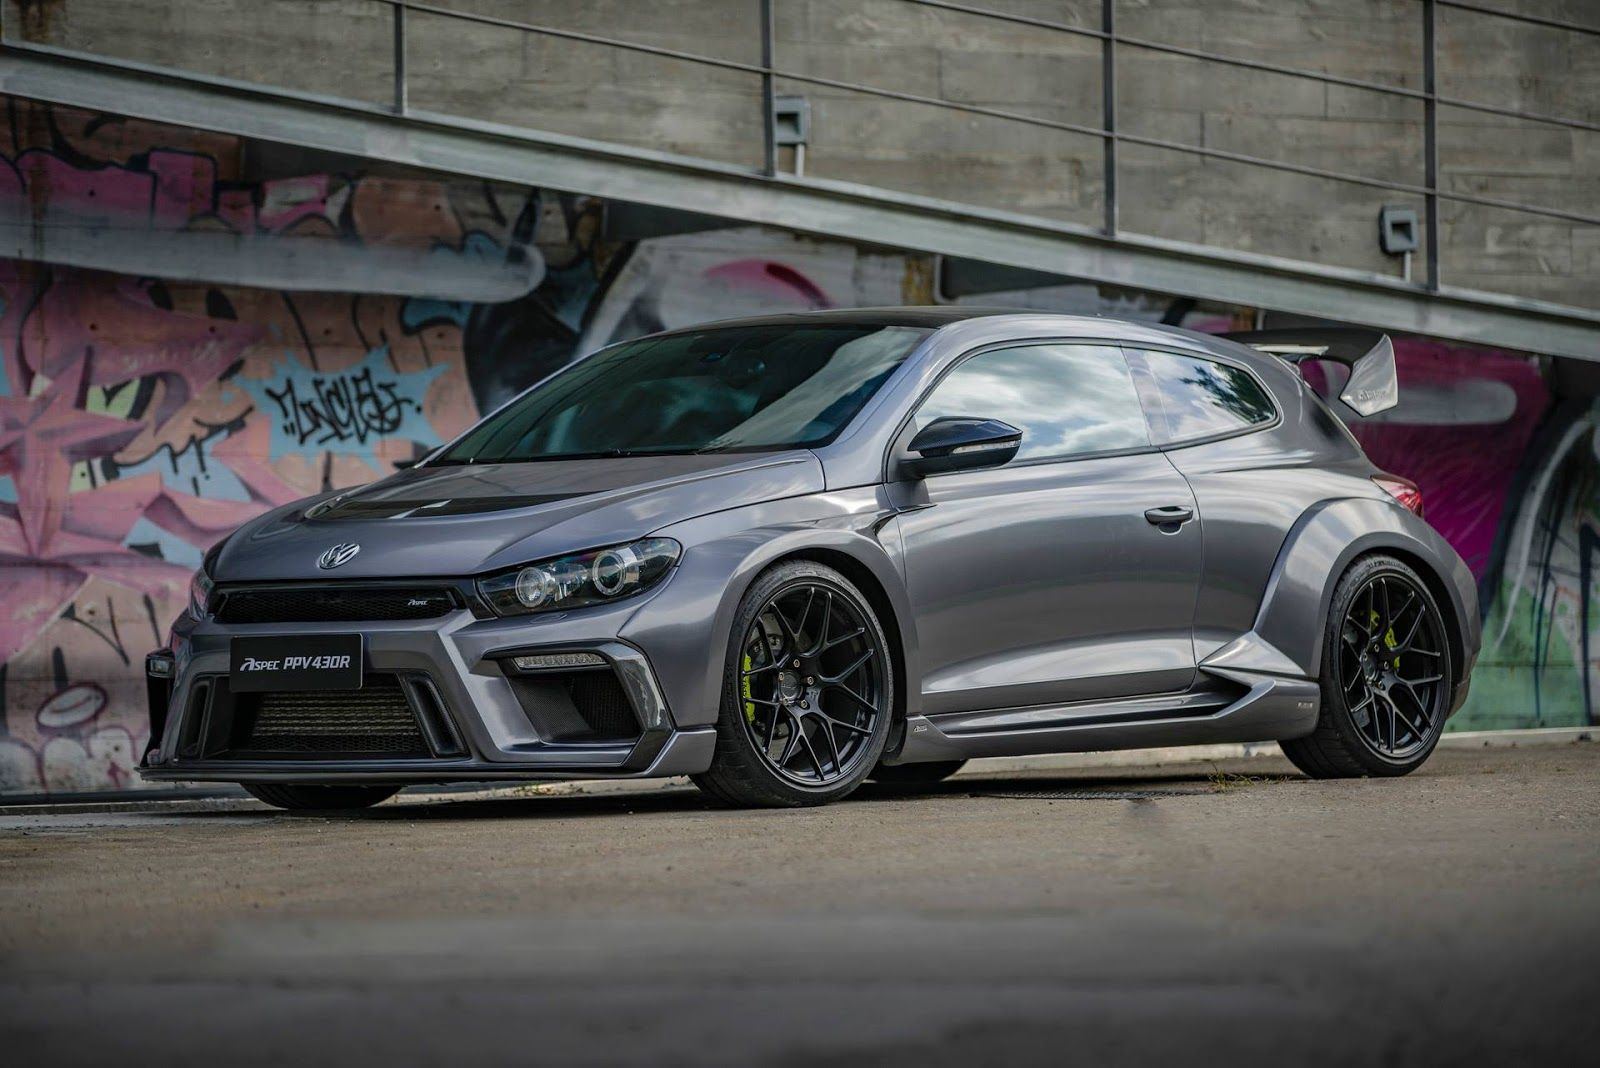 Volkswagen scirocco for sale in usa - Widebody Vw Scirocco R Comes As A Breath Of Fresh Air Despite Its Eight Year